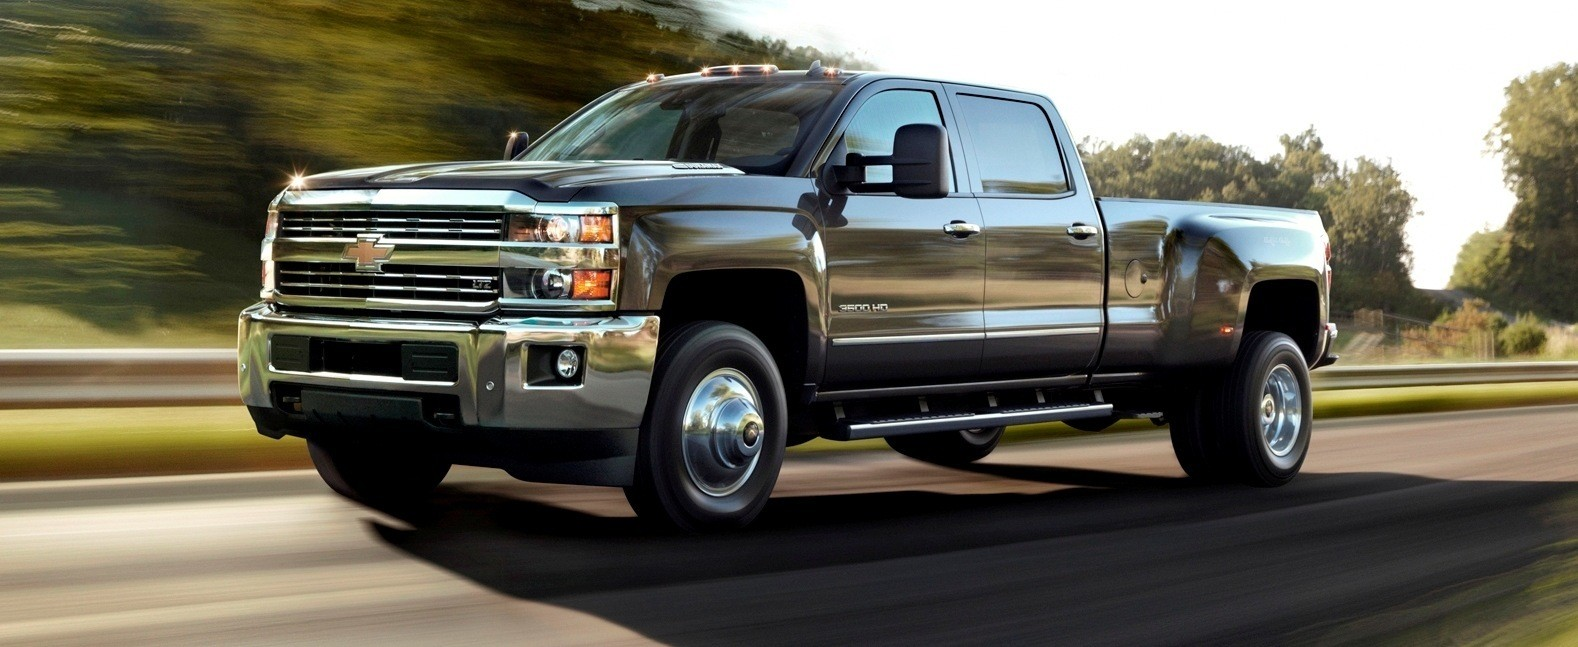 All Types 2015 silverado hd : 2015 Chevrolet Silverado 2500HD and 3500HD Arriving Now To Dealers ...